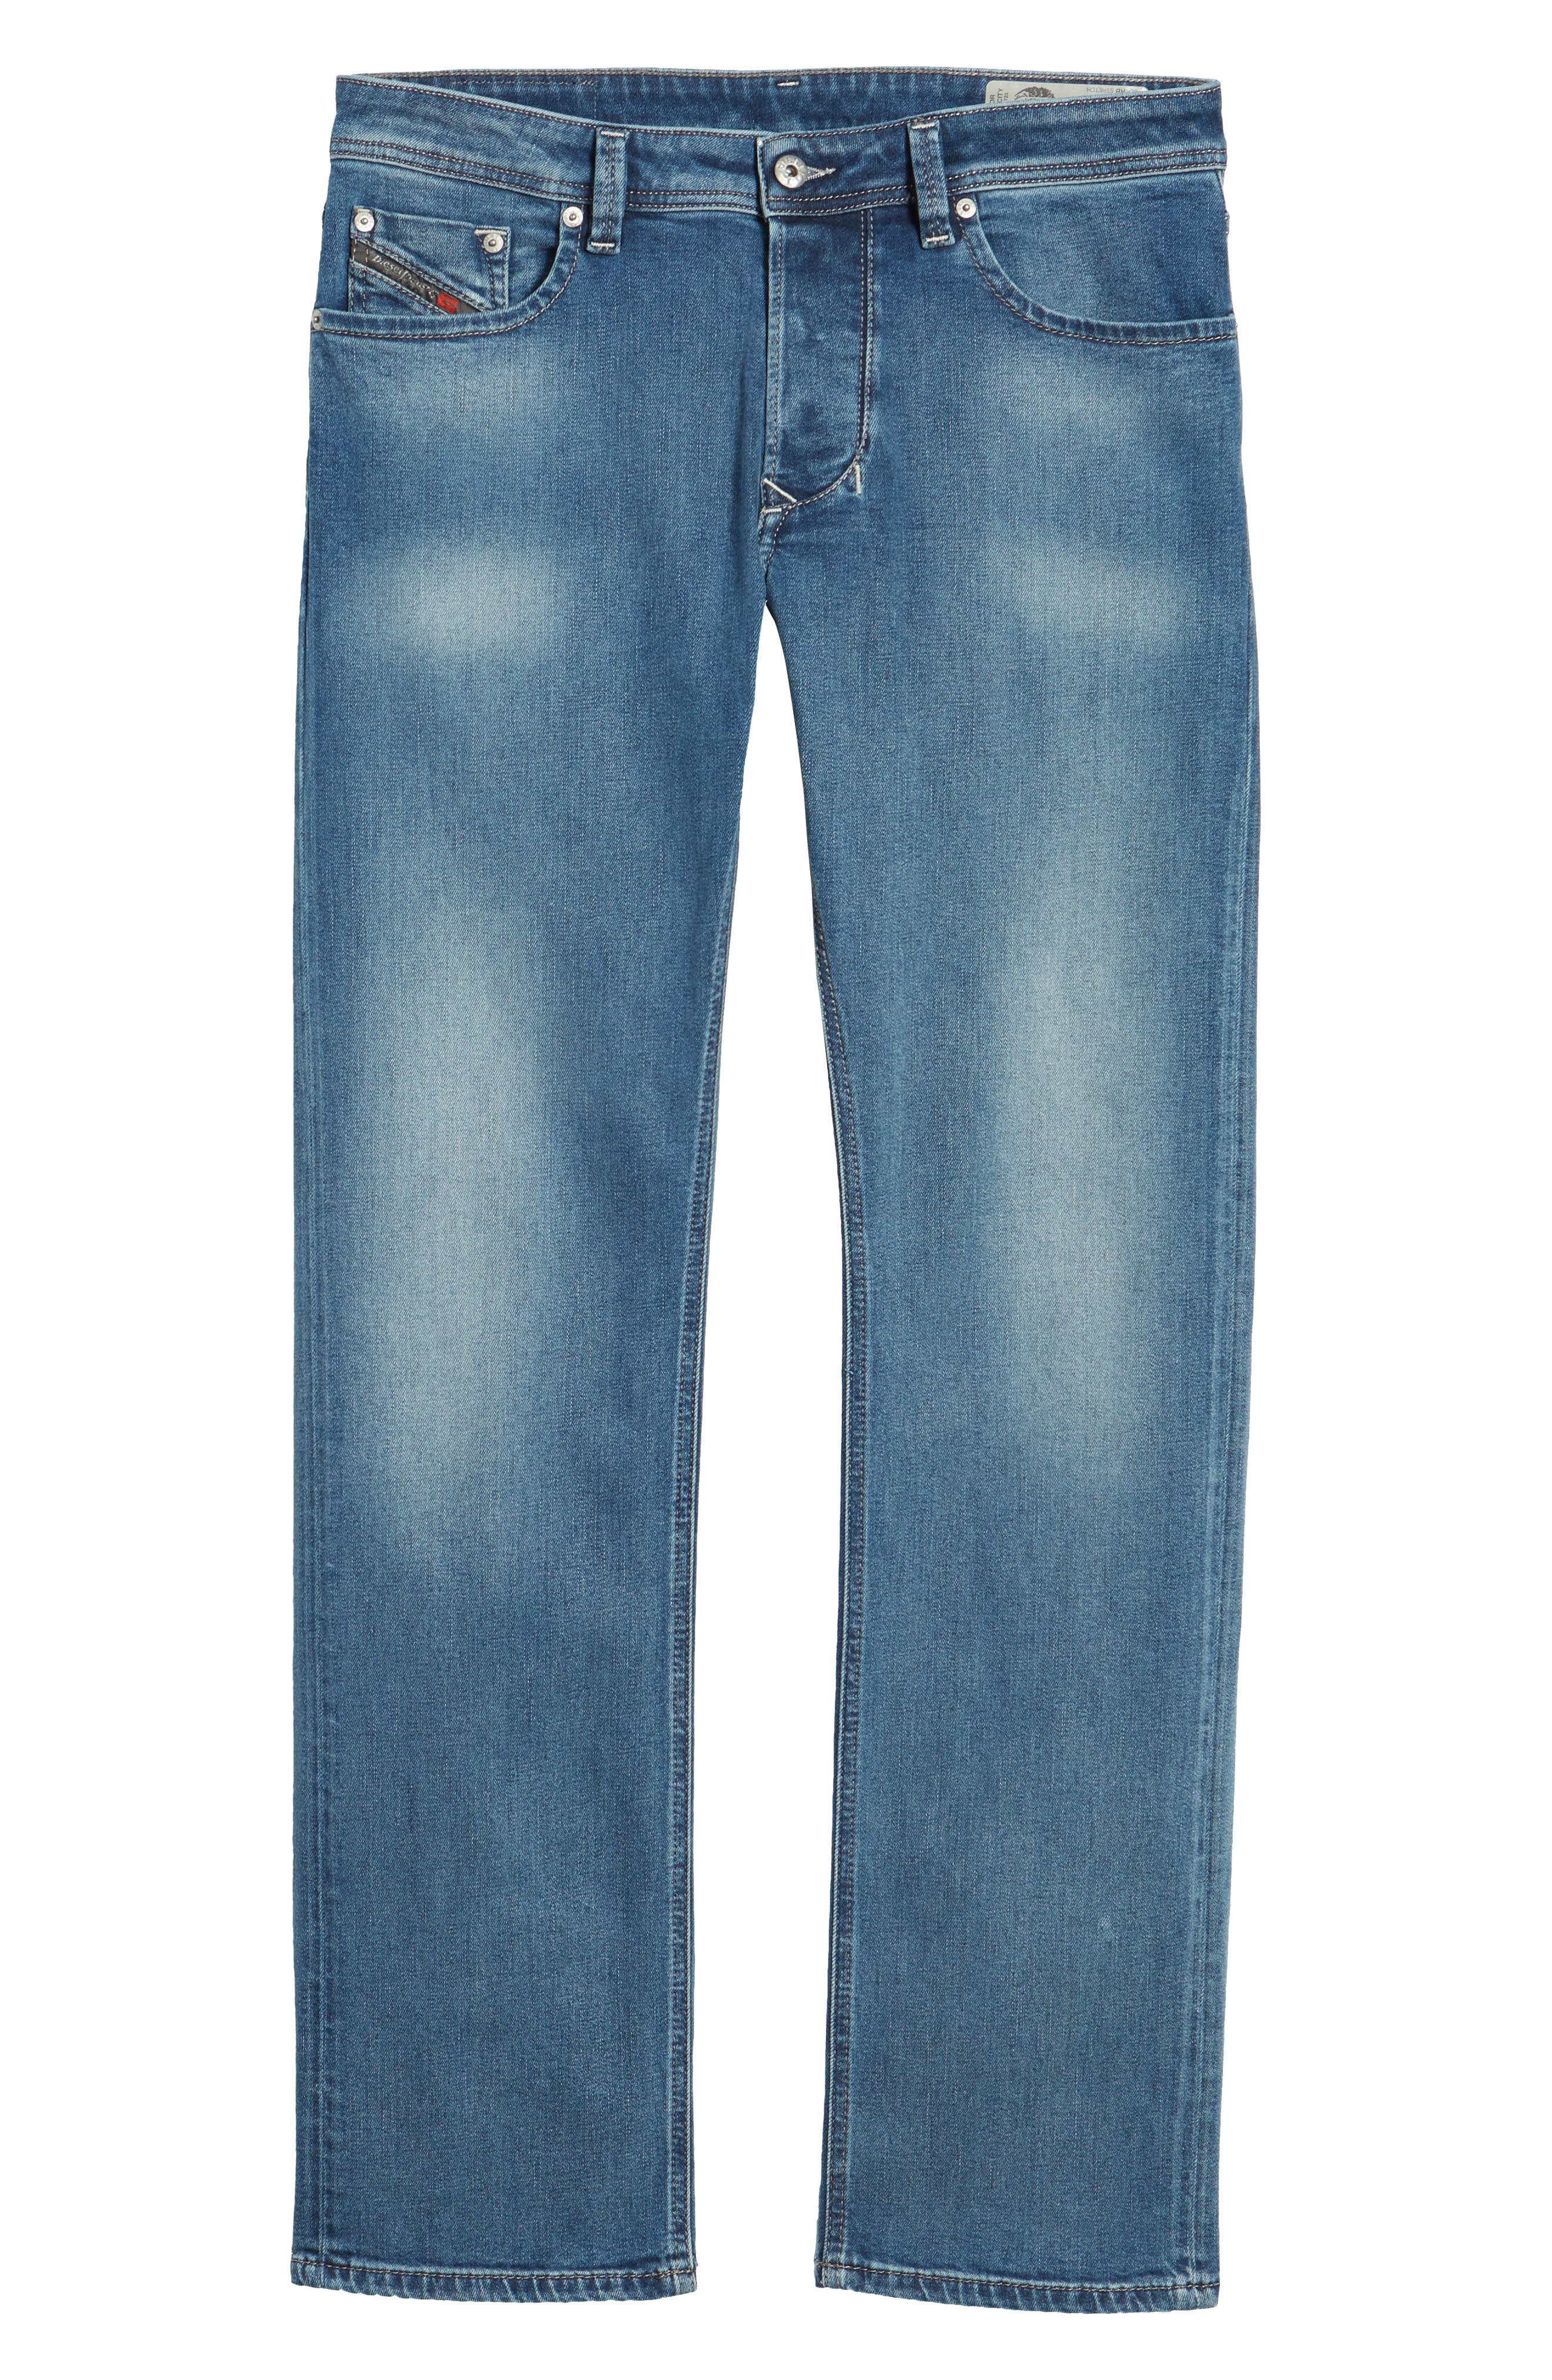 Larkee Relaxed Fit Jeans,                             Alternate thumbnail 6, color,                             900